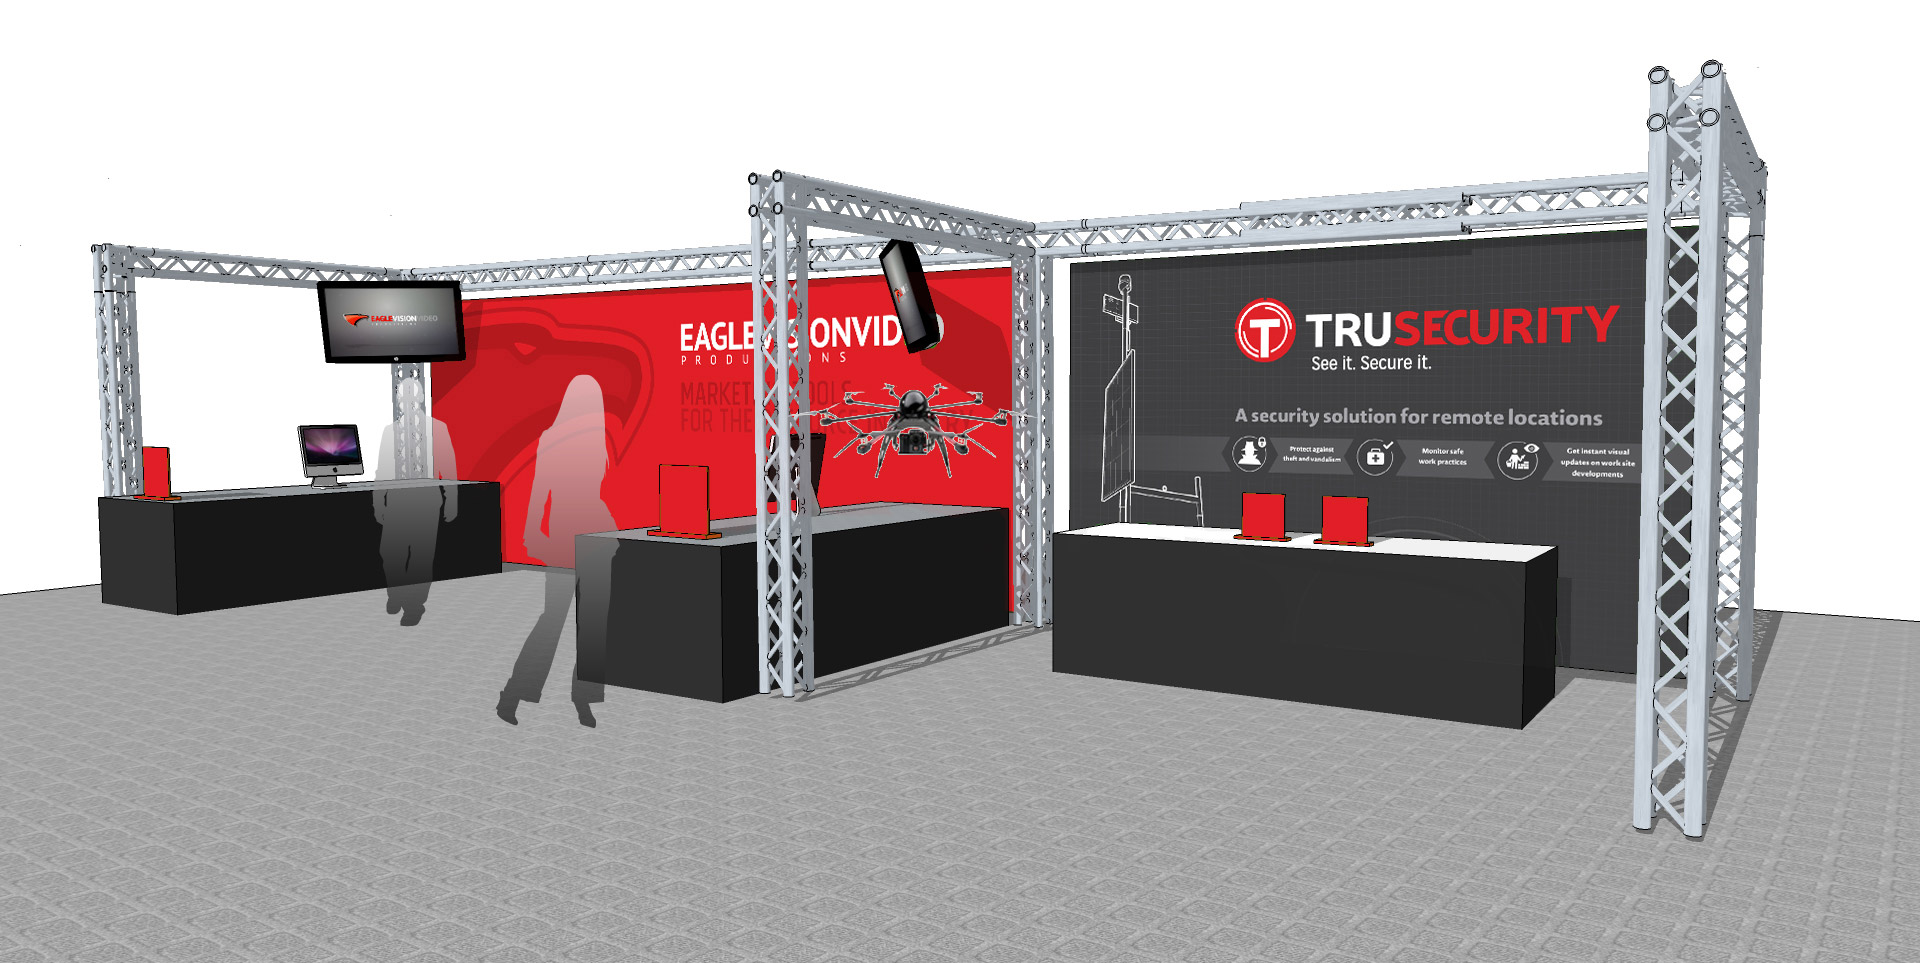 As an example, here is a conceptual design of our own Eagle Vision& Tru Securitydisplay booths usingtrussing and LED displays.These images are anexample of how we can visualize your trade show booth.